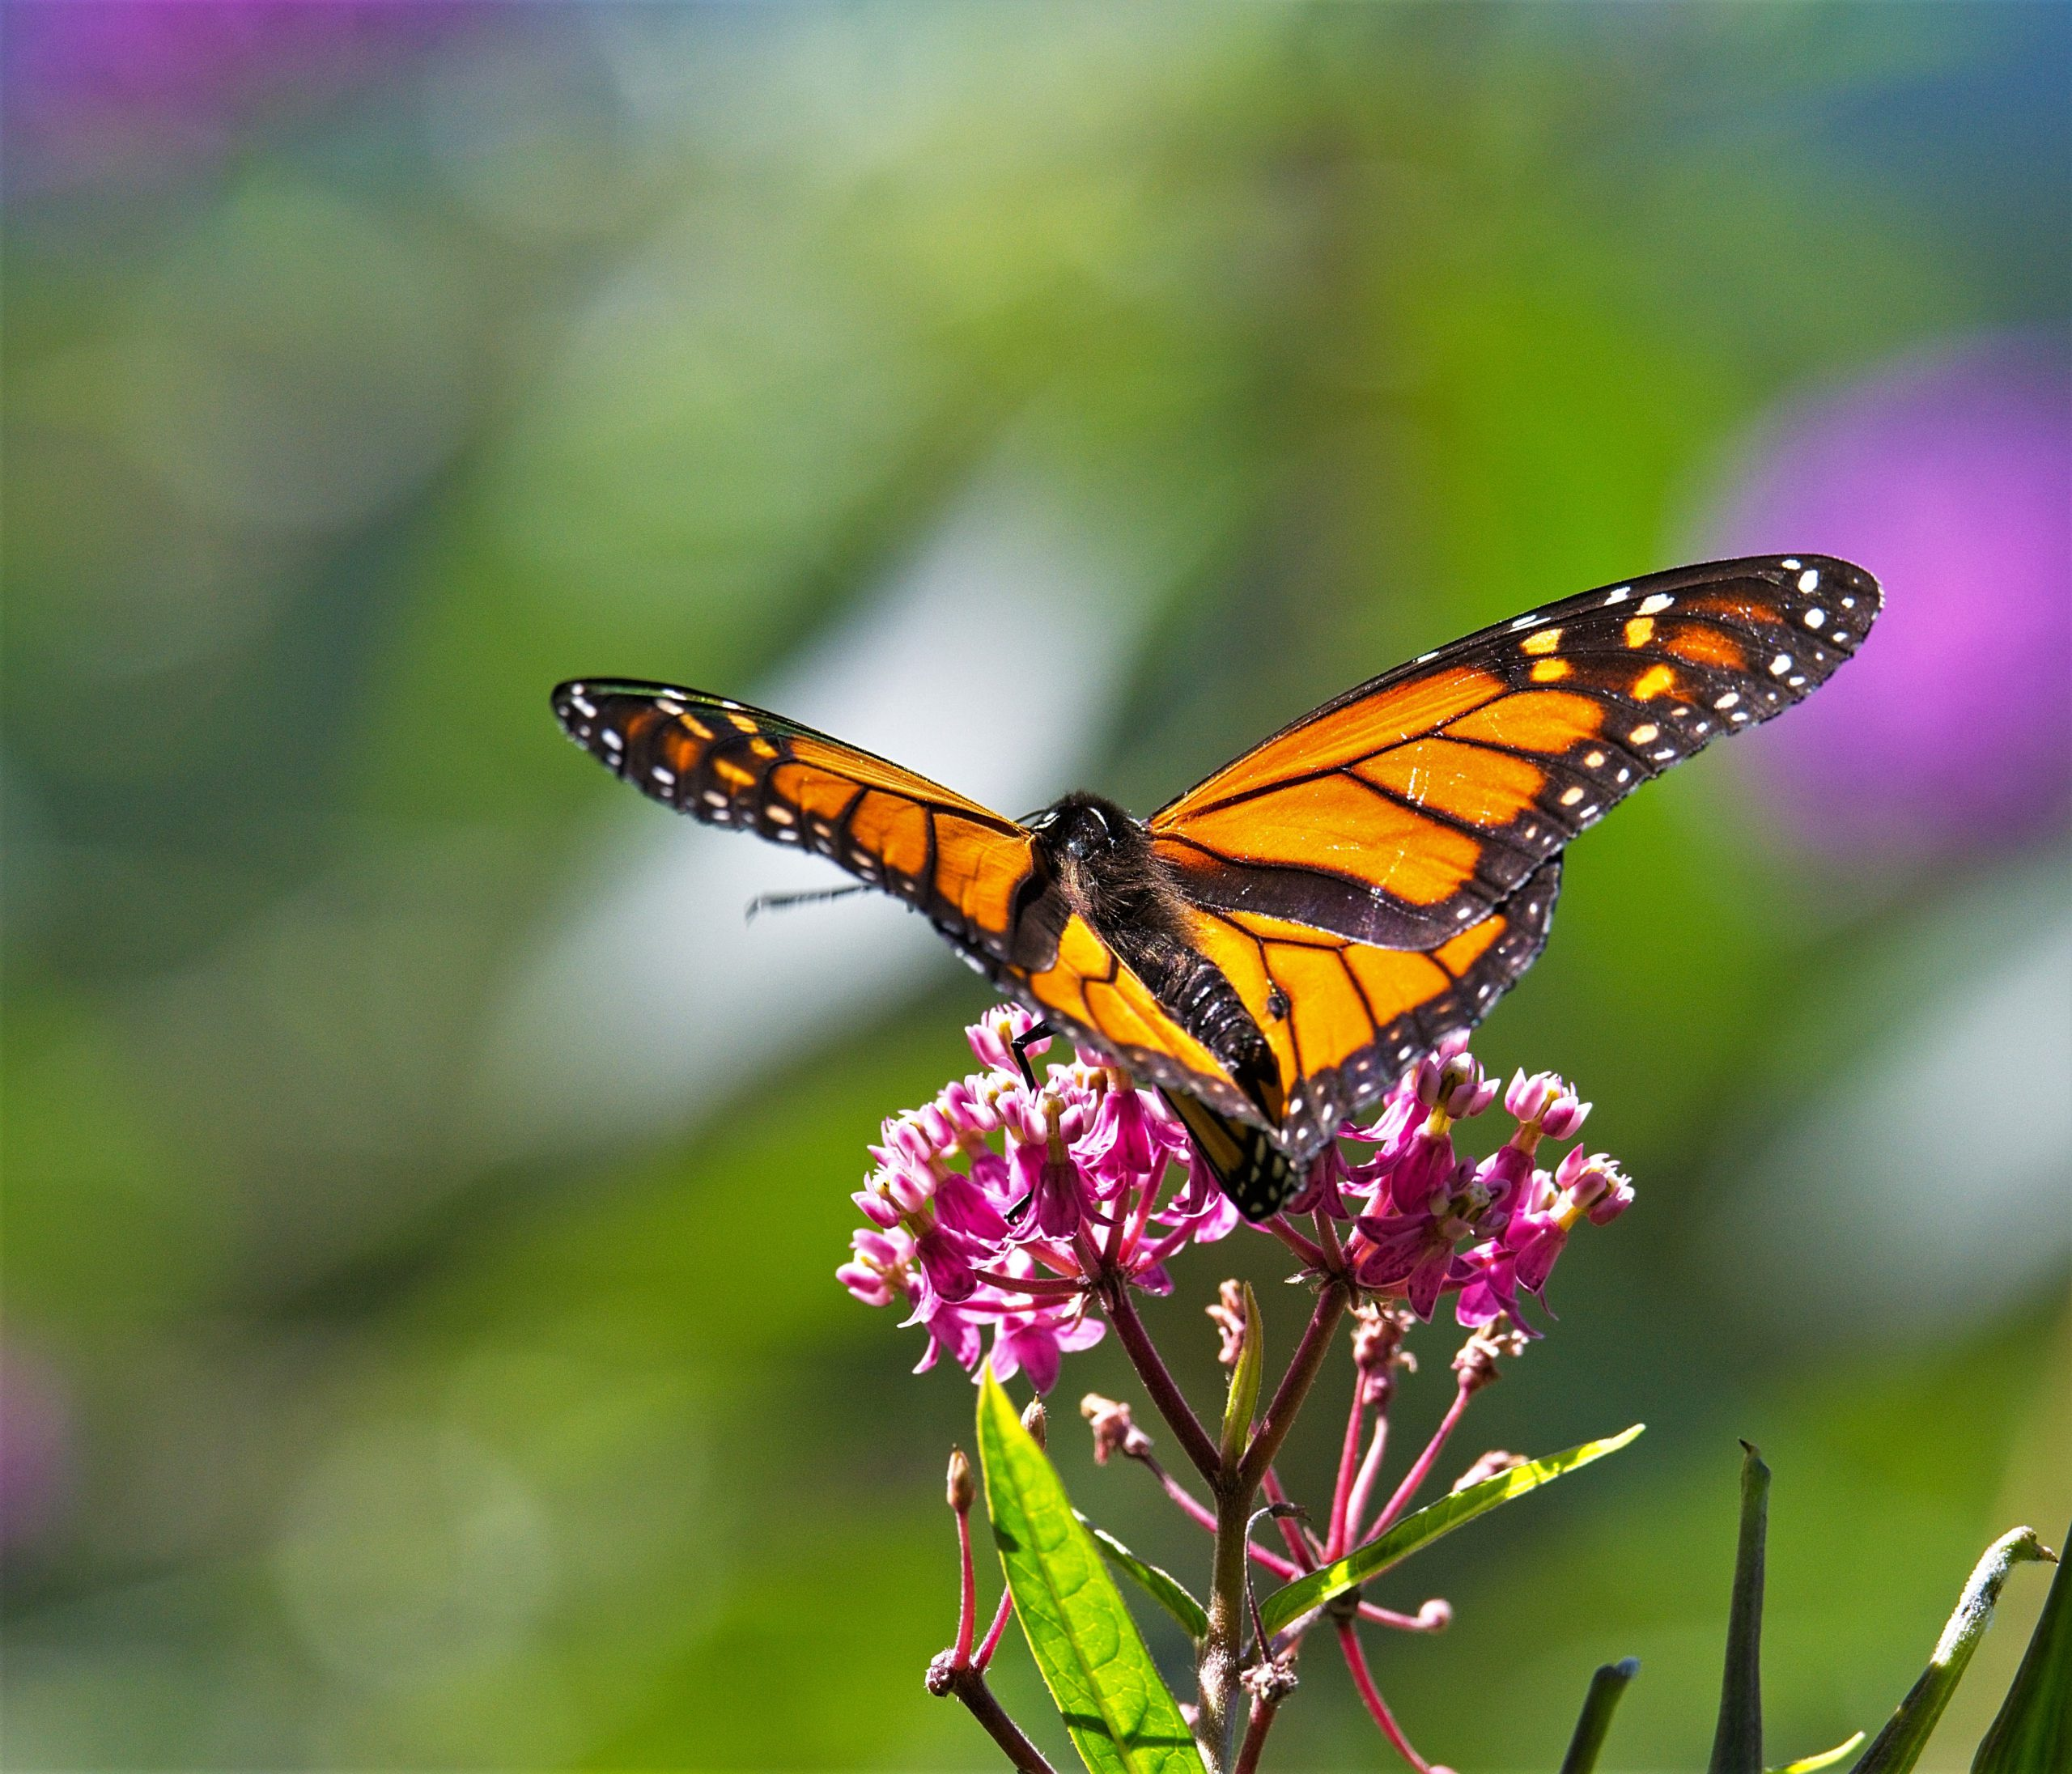 DOUG GAUDETTE, UNTITLED: Monarch butterflies are both beautiful and fun to photograph. Even though I'm feeling fatigued or a bit dizzy at times, I can sit in my chair and photograph these beautiful creatures. It reminds me that I can still do many of the things I like to do. The monarchs are both delicate and strong, a very nice combination. Although they will be heading south very soon, they will be back in the late spring and I'll be ready.